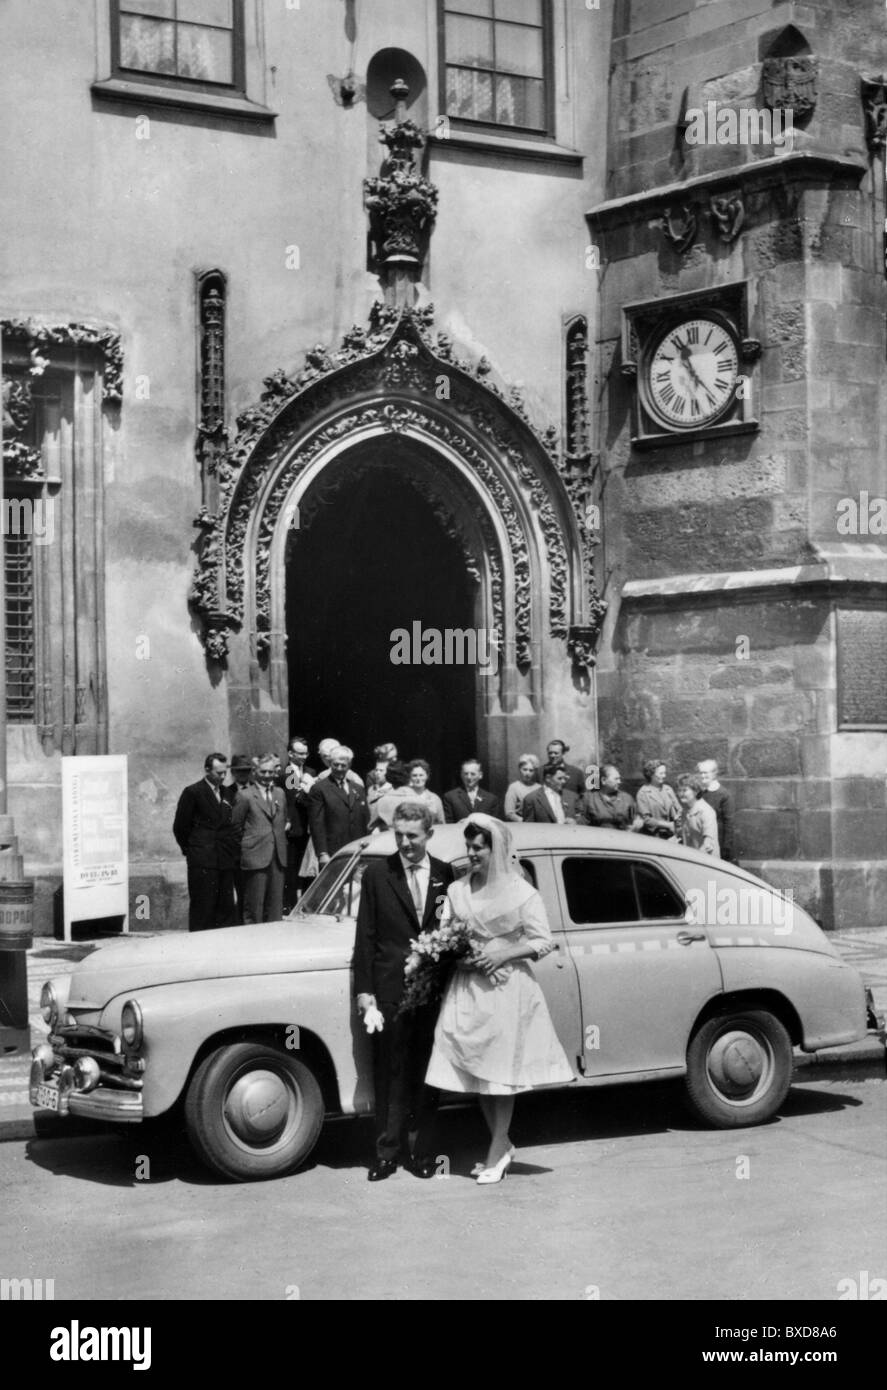 People Couples Wedding 1950s Marriage Married Couple Car Bride